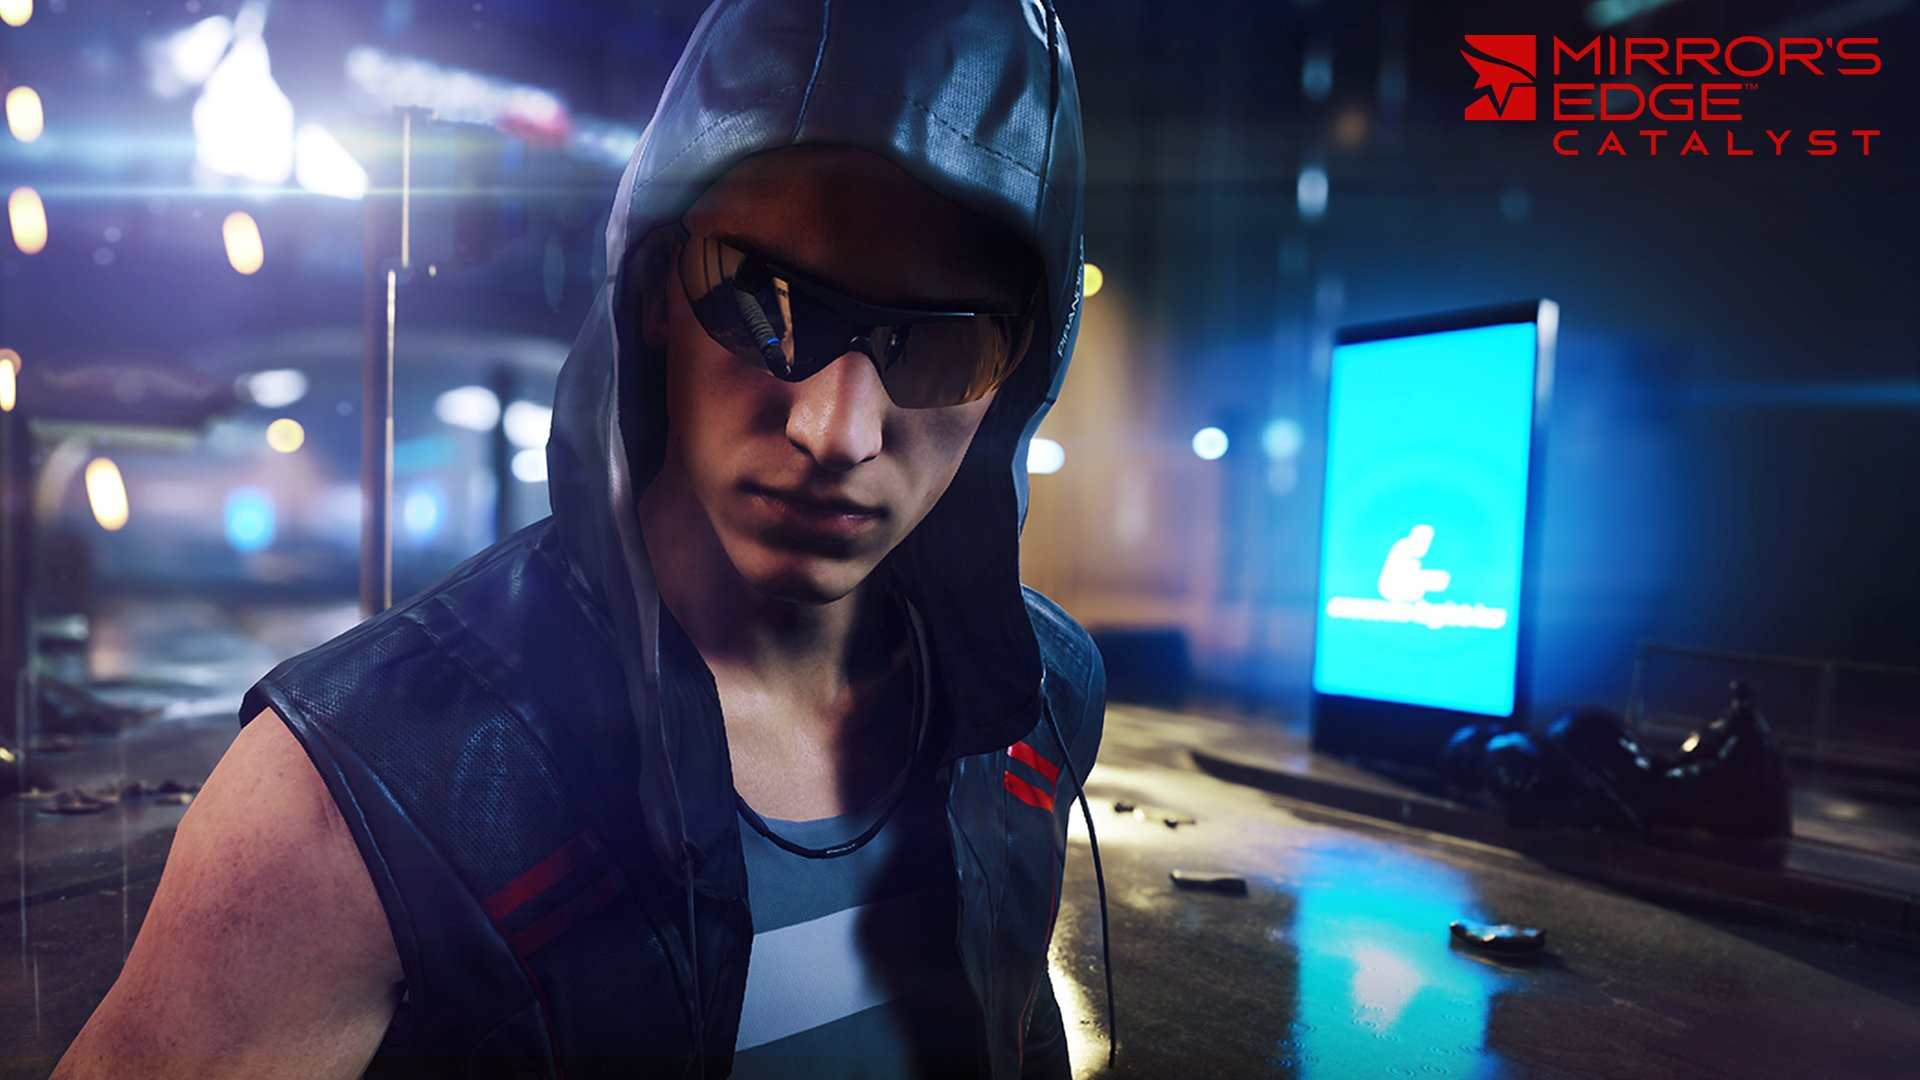 Mirrors Edge Catalyst Doesnt Quite Stick The Landing mirrors edge 2 036